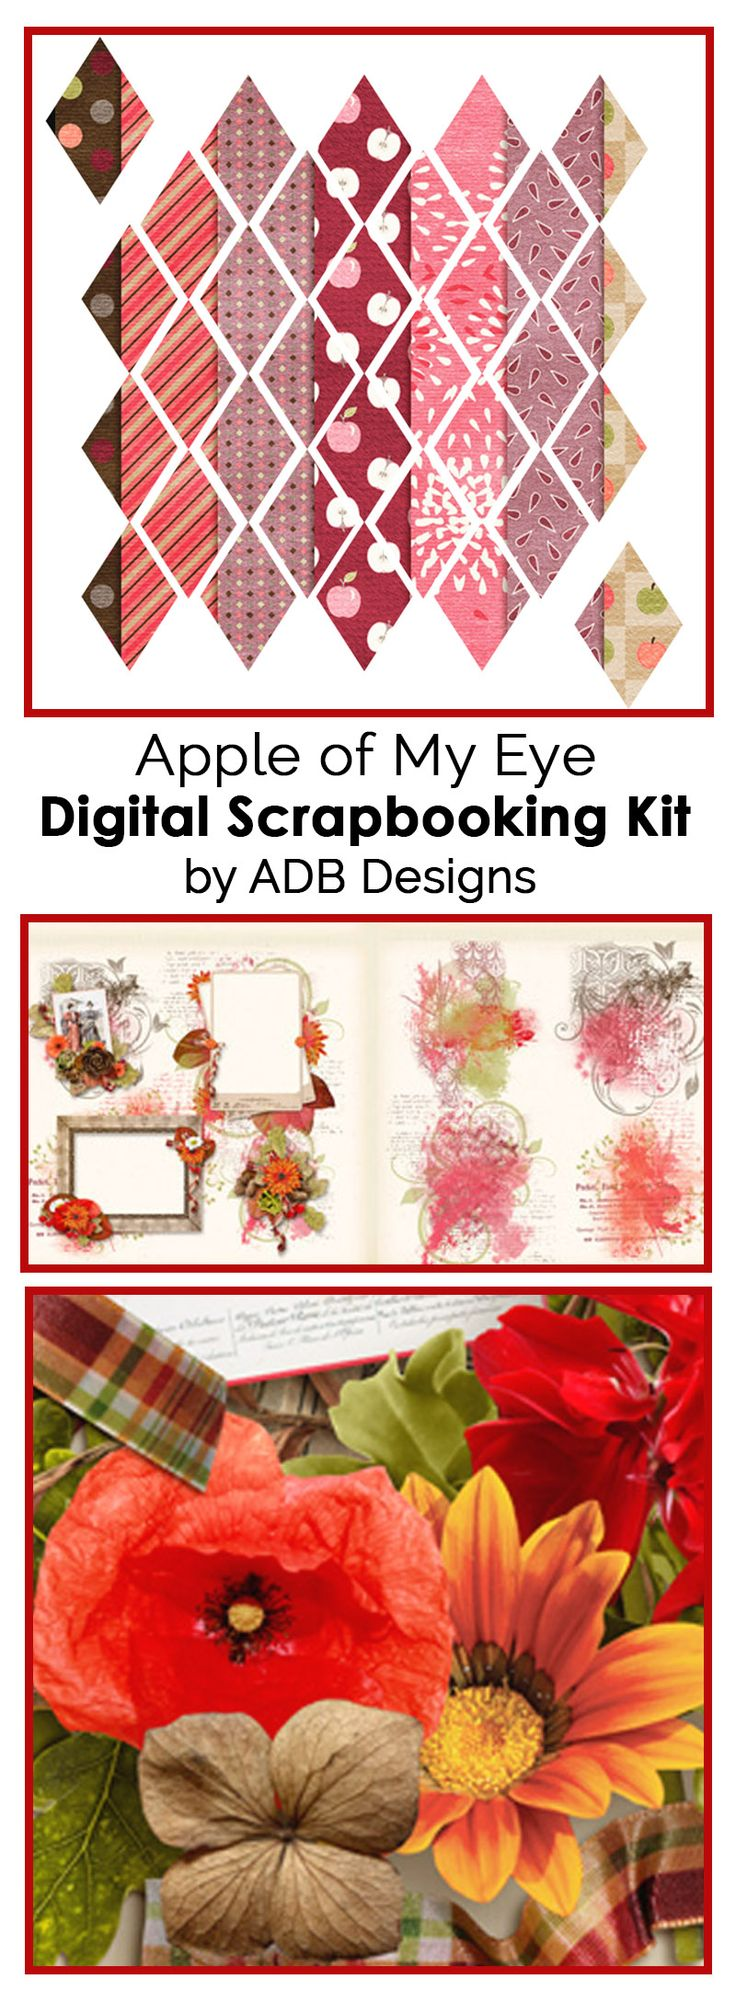 The Apple of My Eye Digital Scrapbook Petite Kits by ADB Designs each offer a unique feel of vintage but with bright, bold colors. Create your digital photoboook or print and cut for gorgeous hybrid projects.